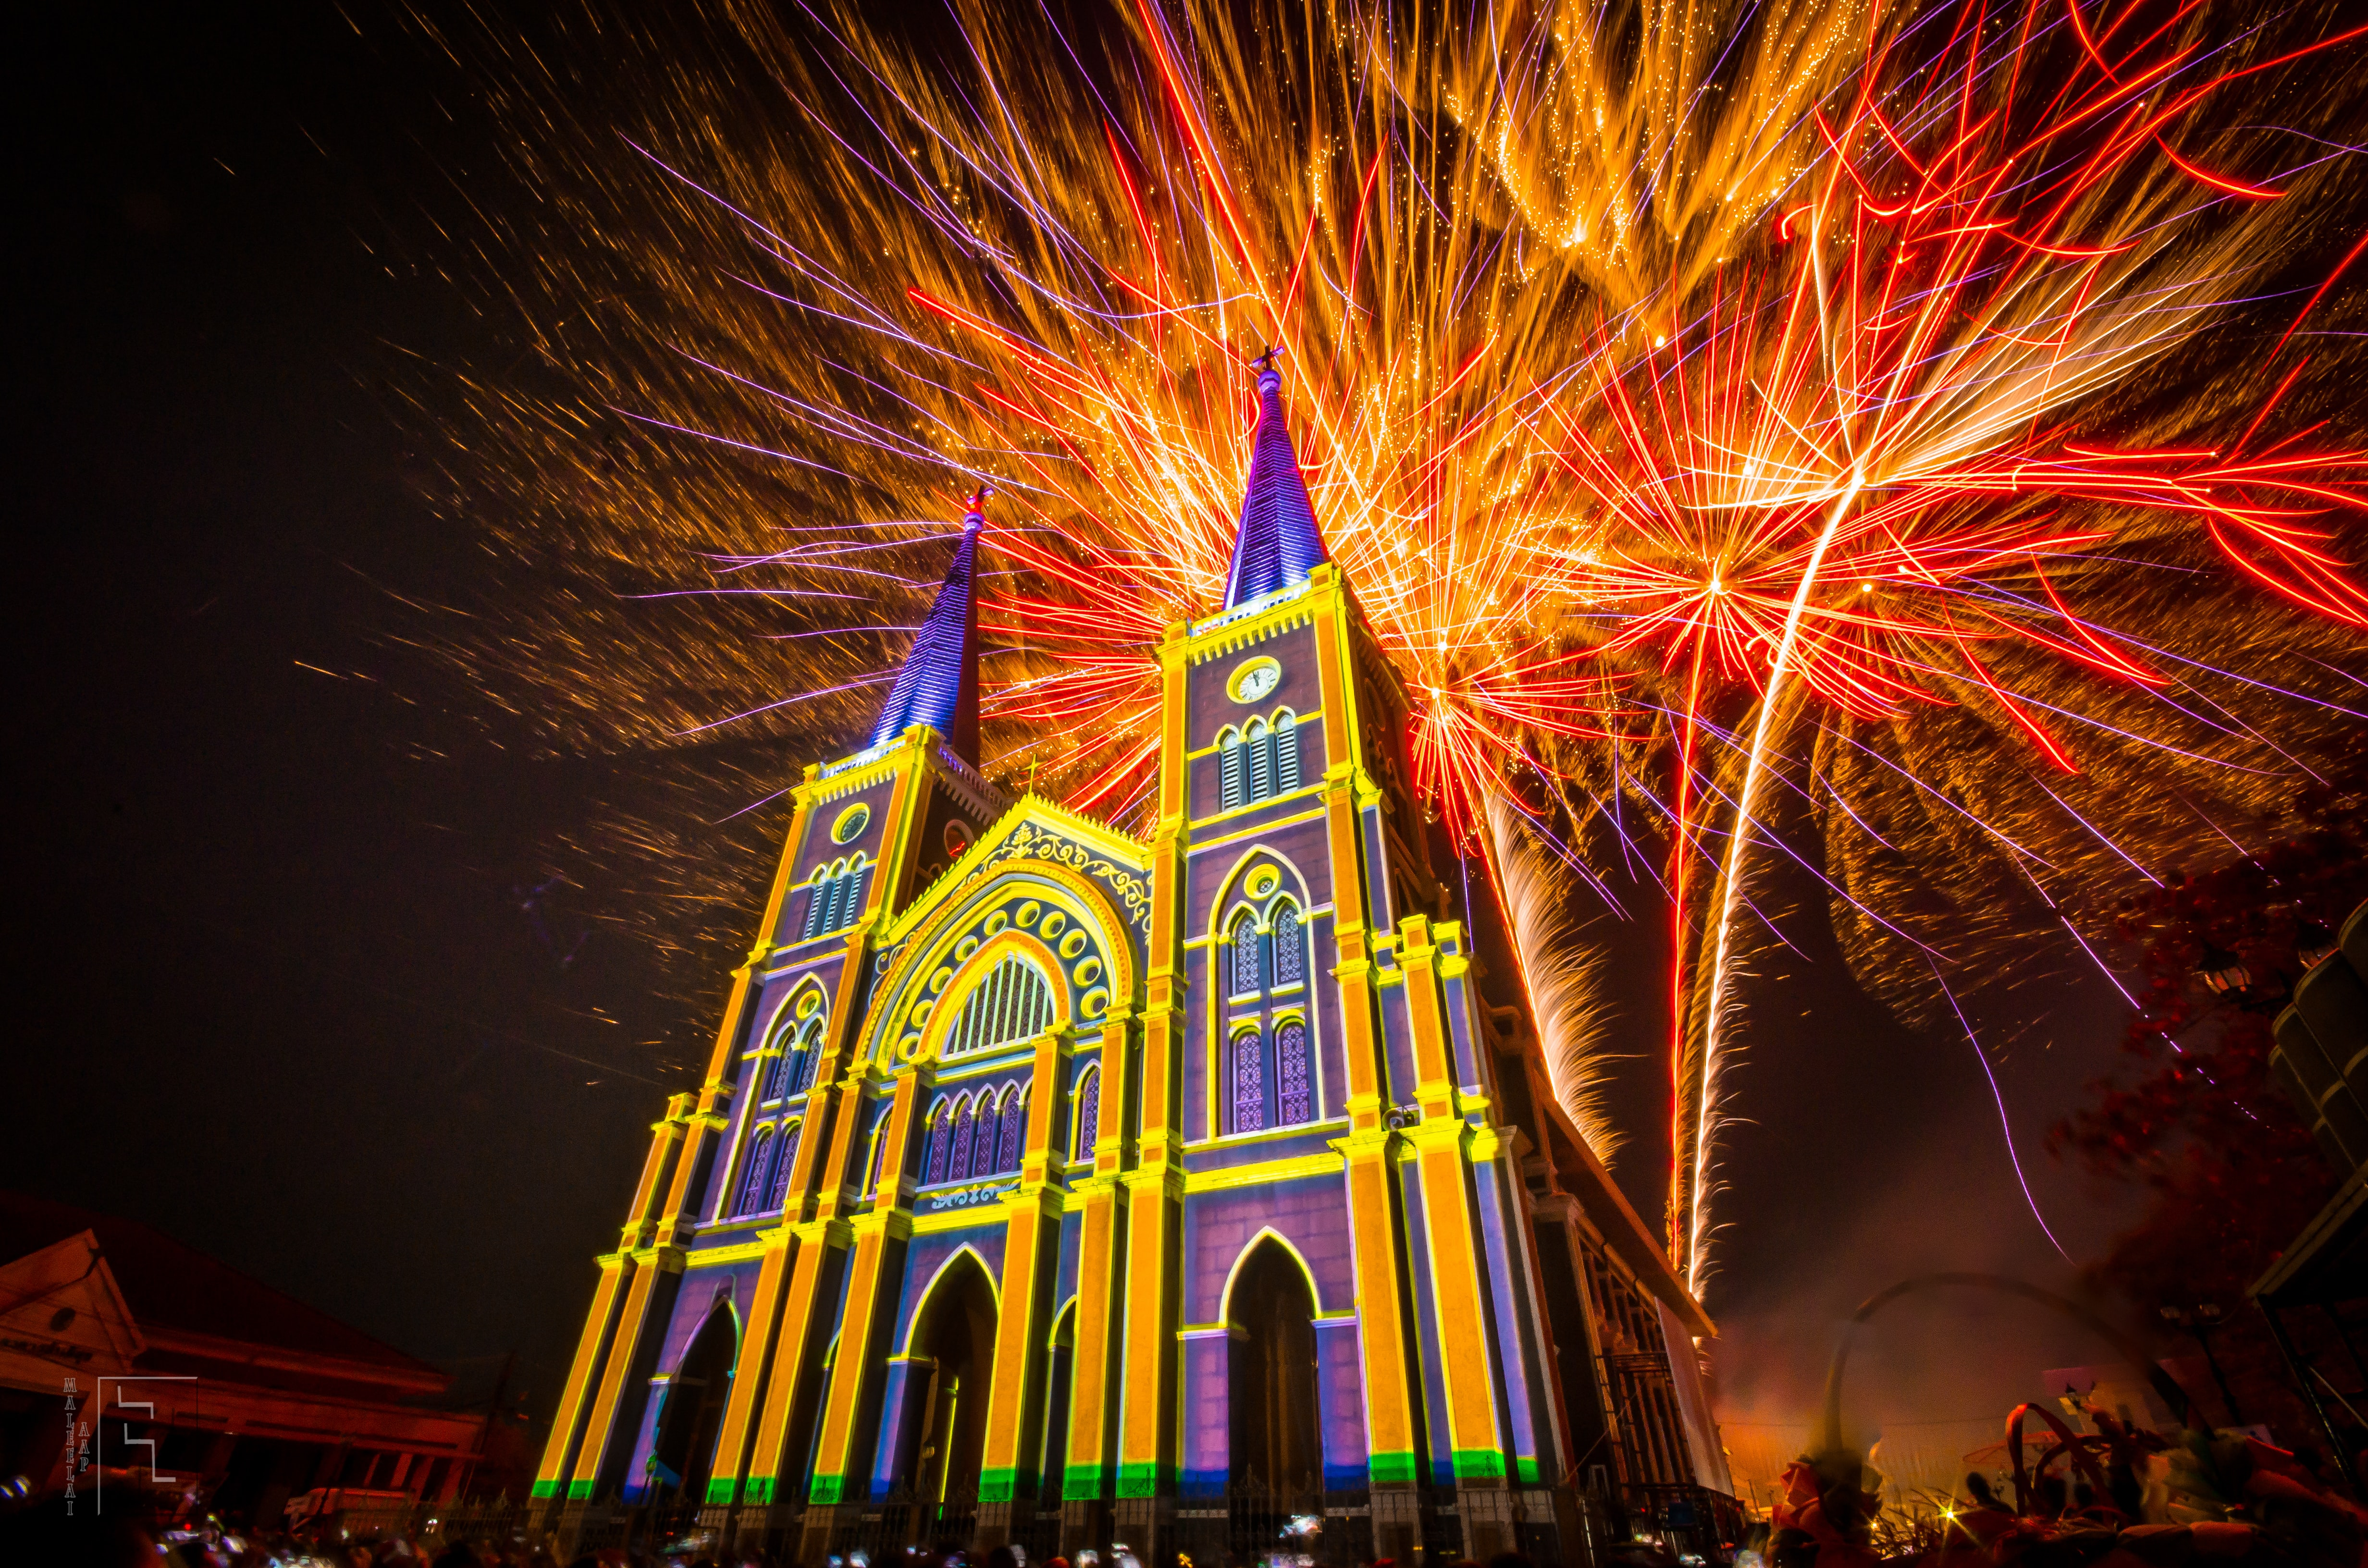 church and fireworks display during night time